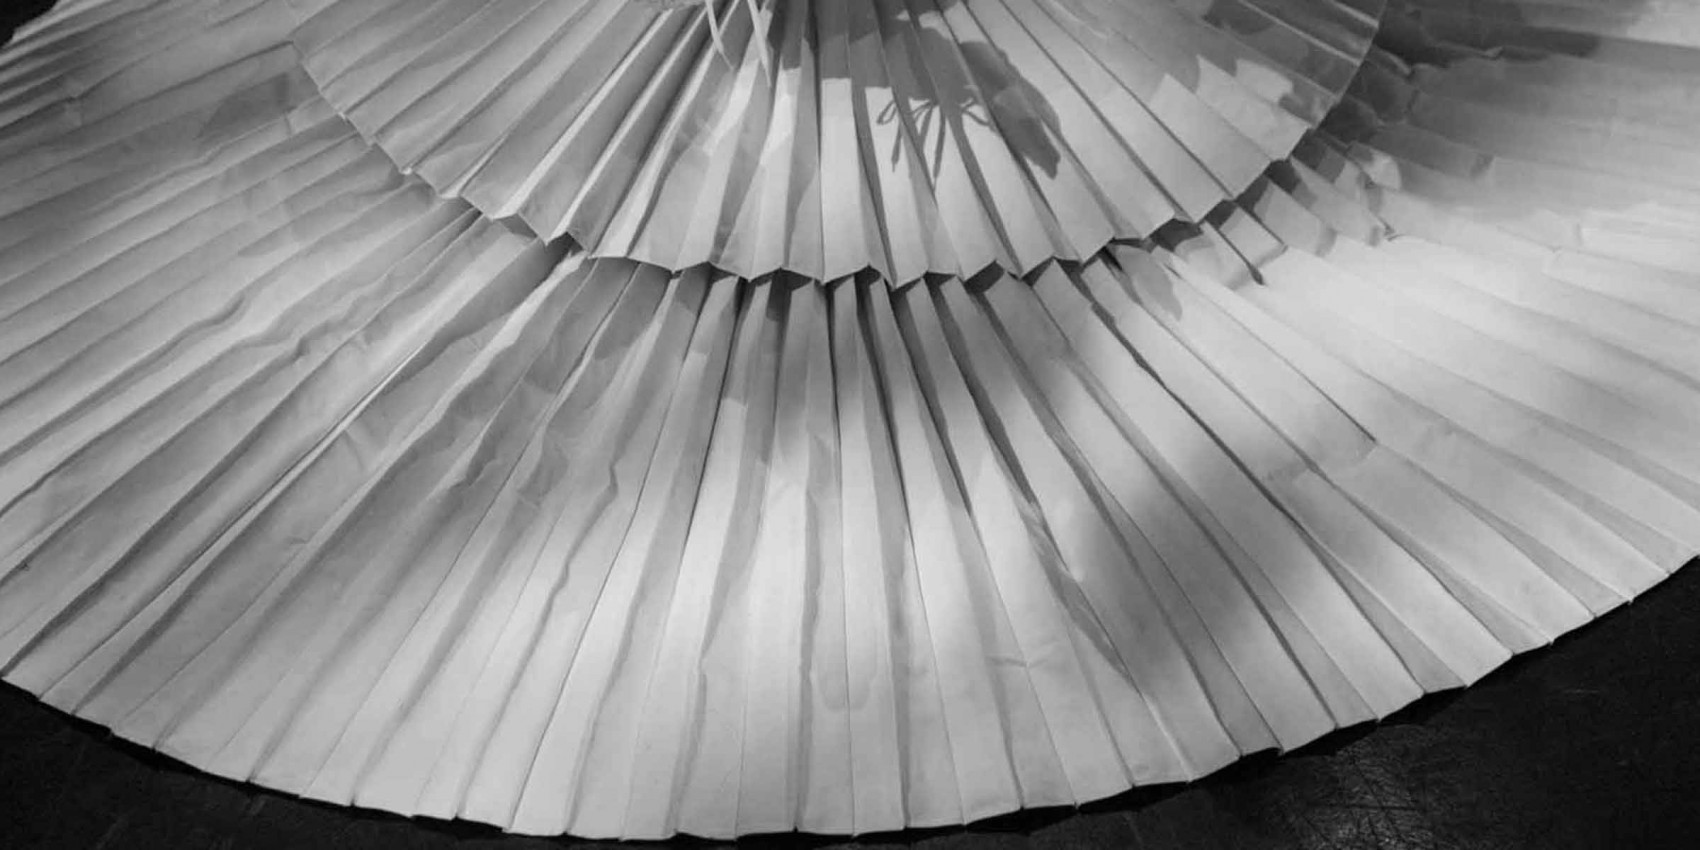 A huge circular skirt that looks to be made from concertina paper